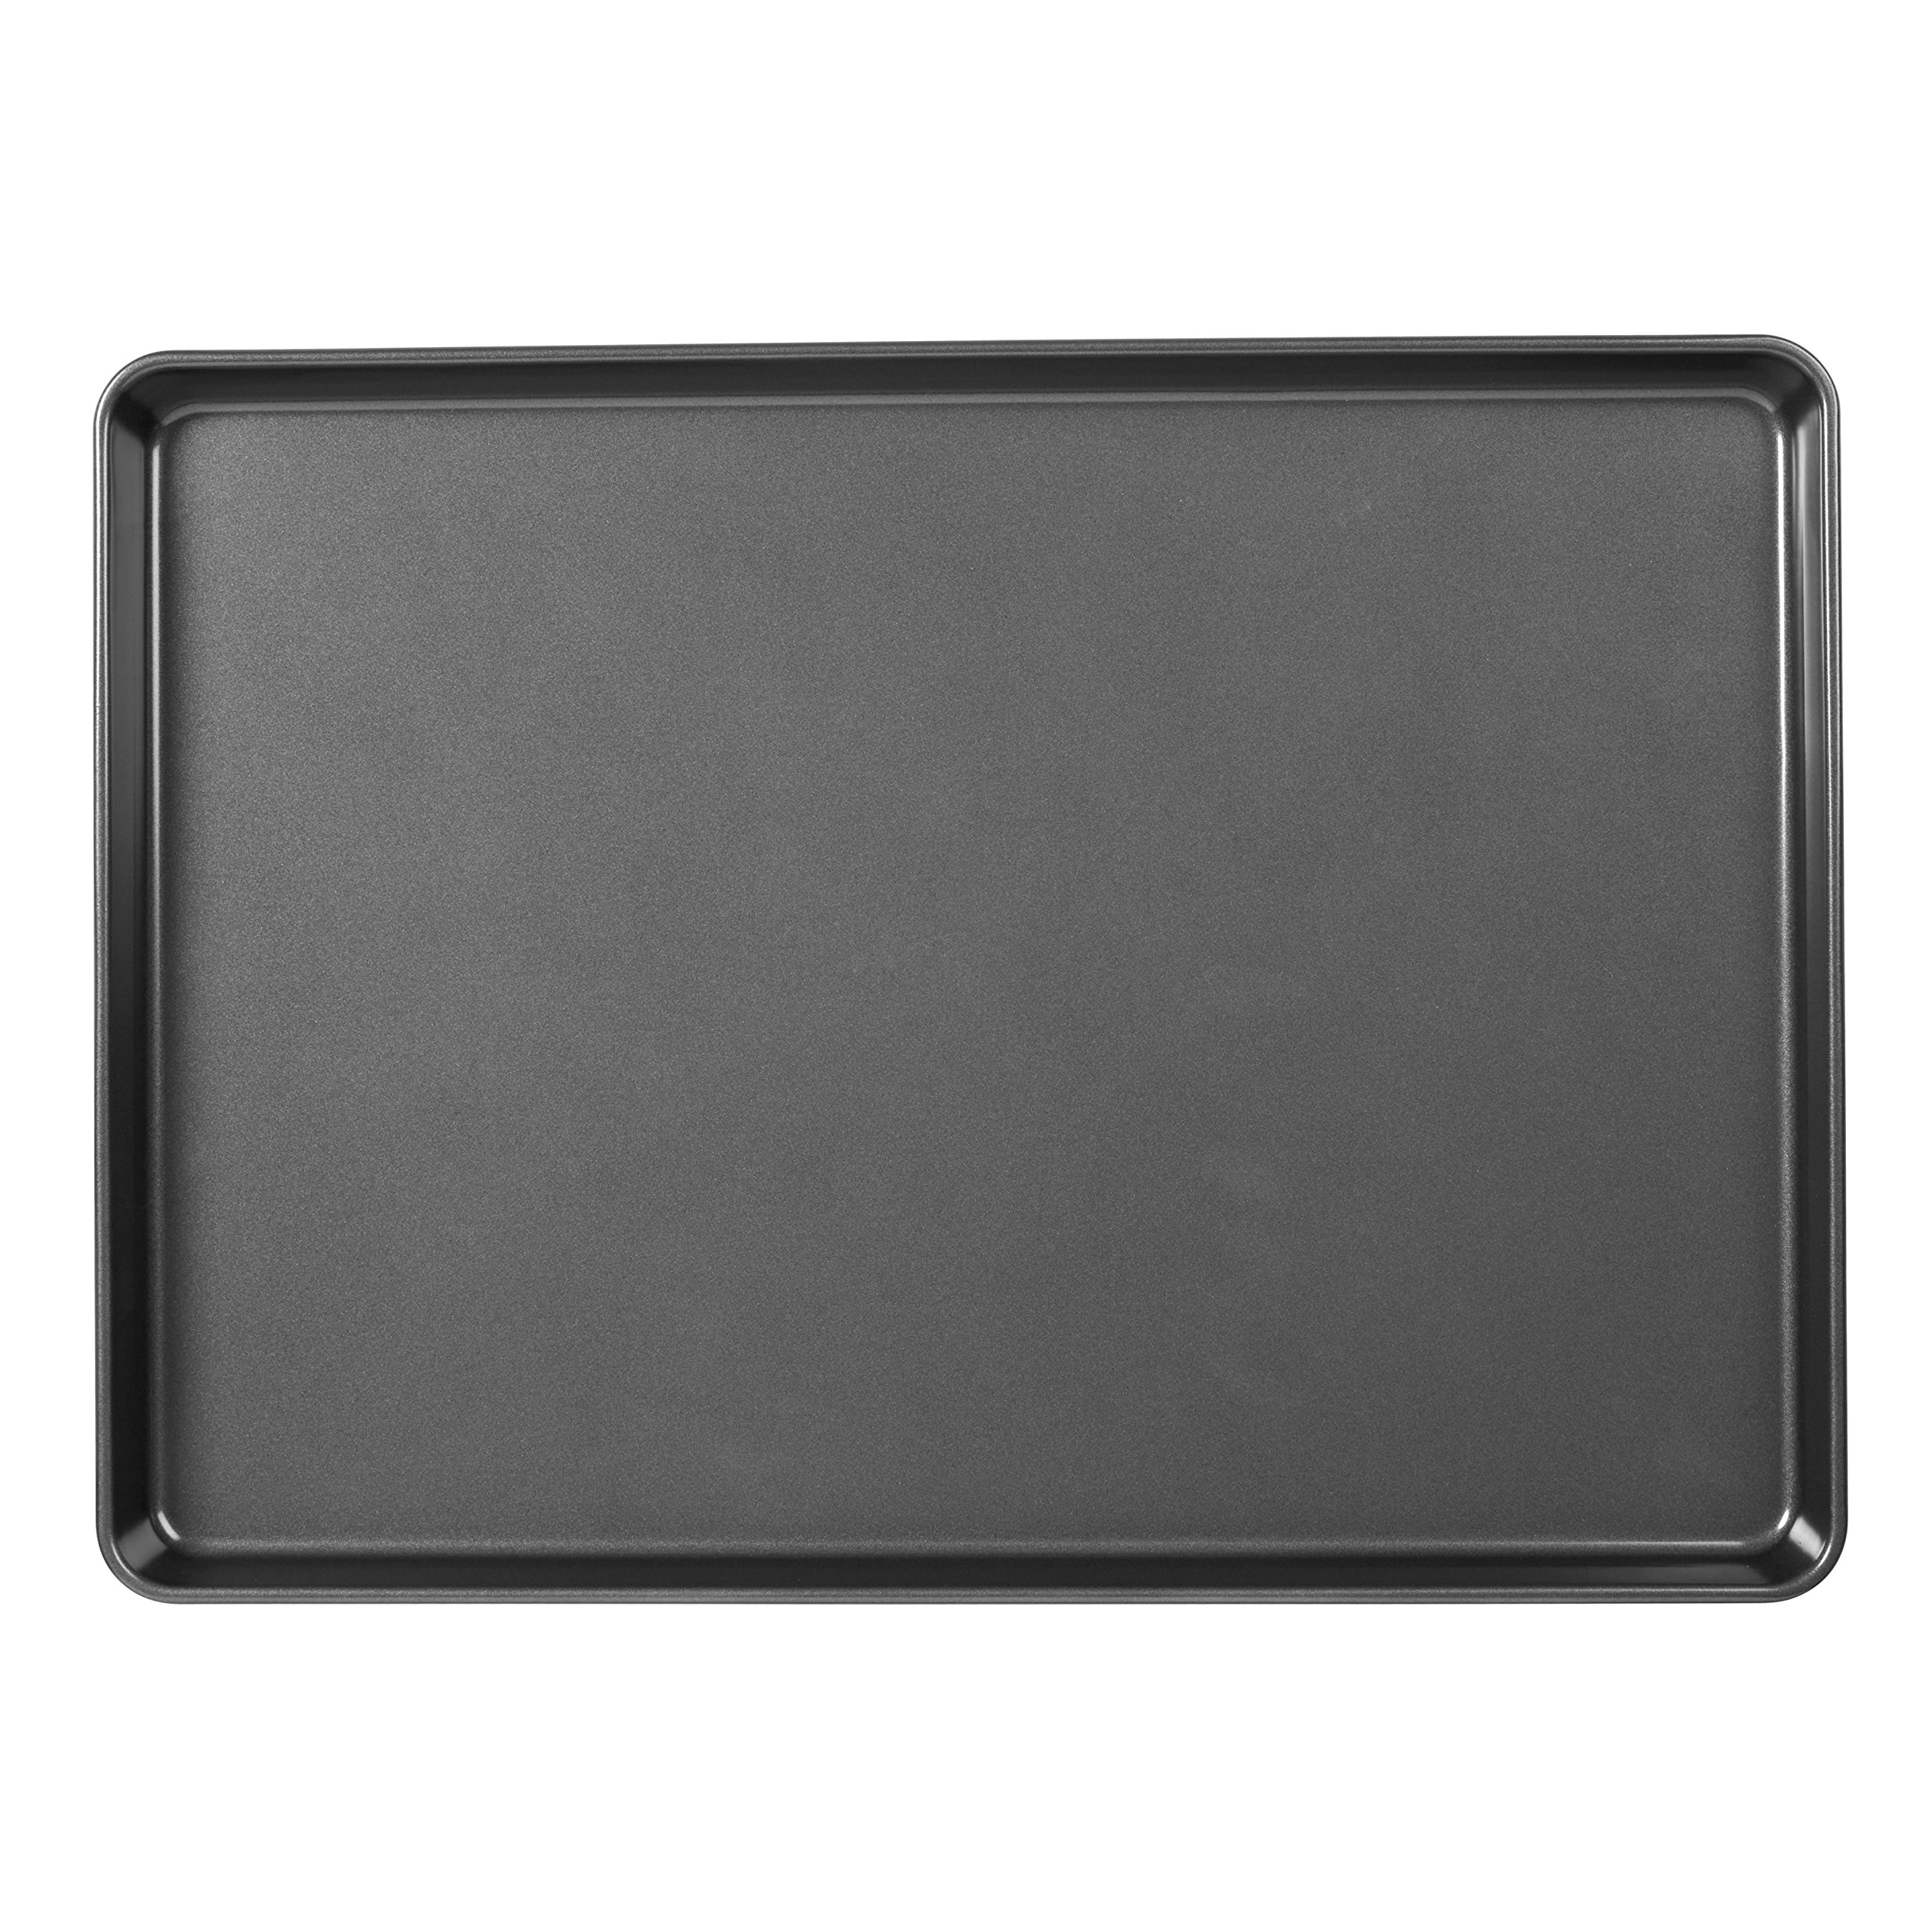 Wilton Perfect Results Non-Stick Mega Large Cookie Pan, 15 x 21-Inch